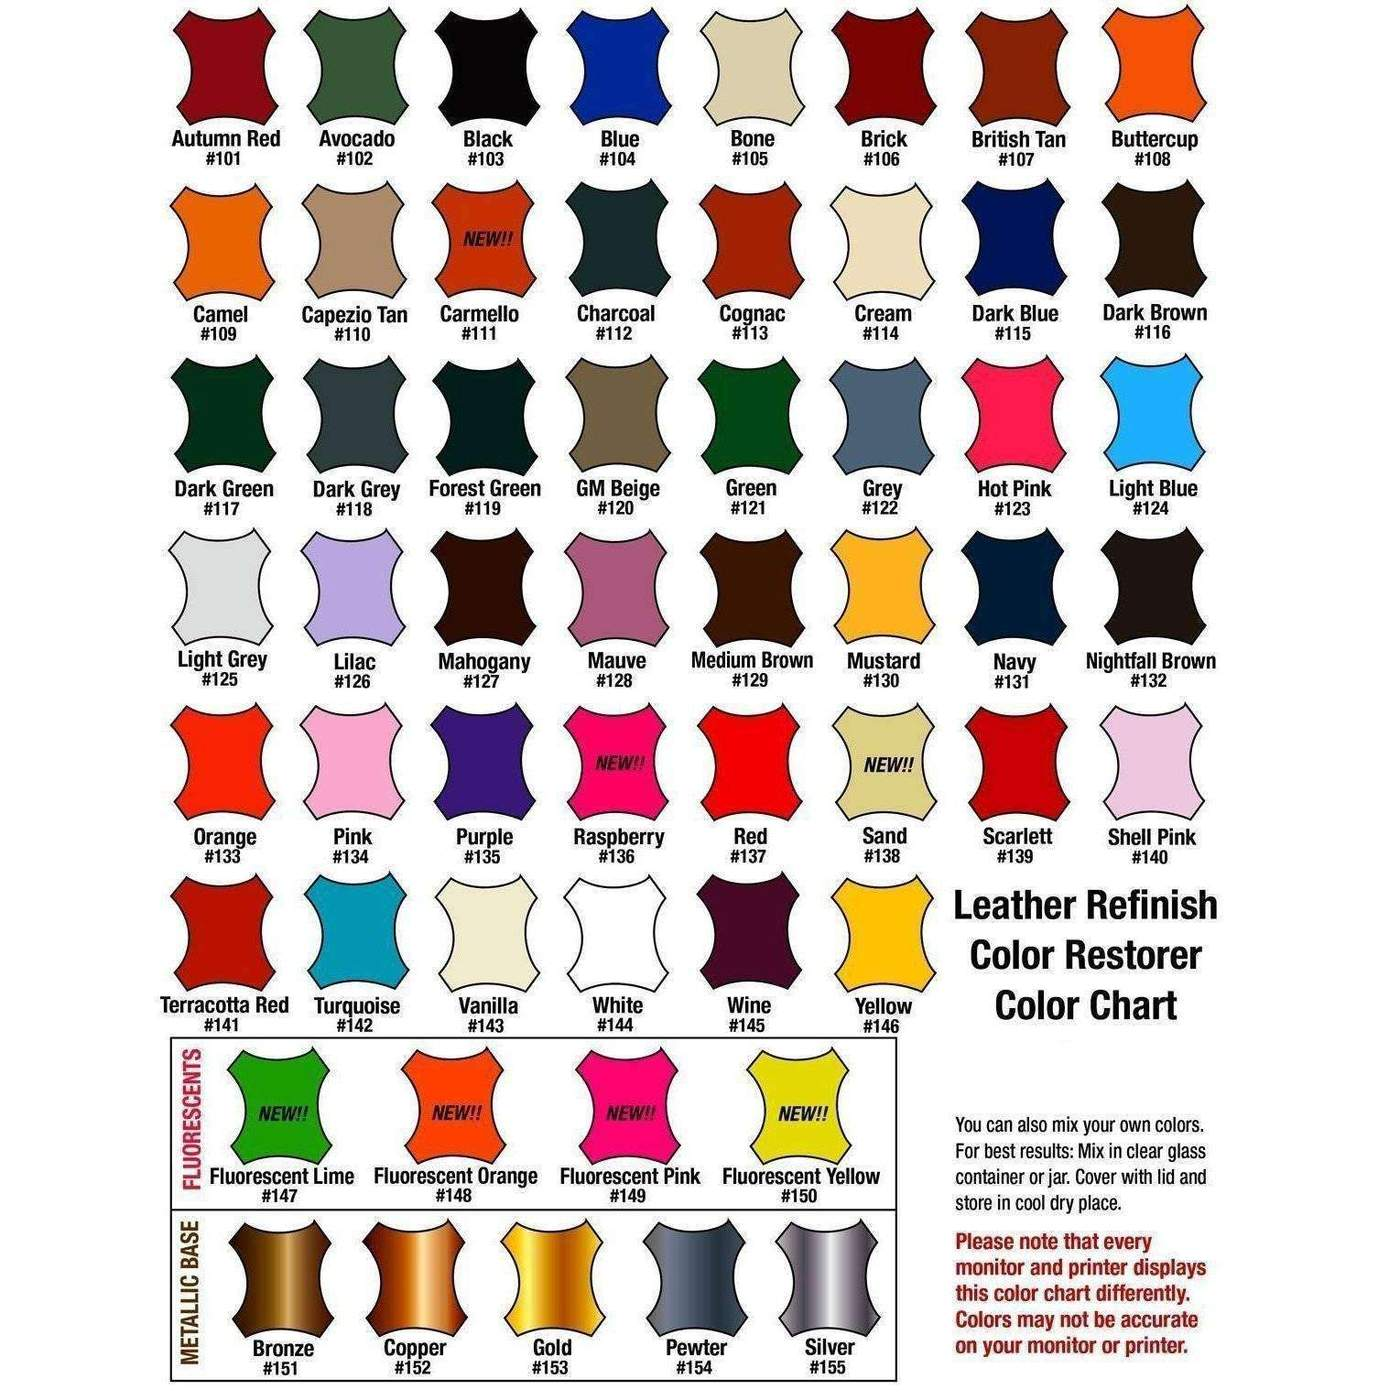 Leather Refinish Color Chart